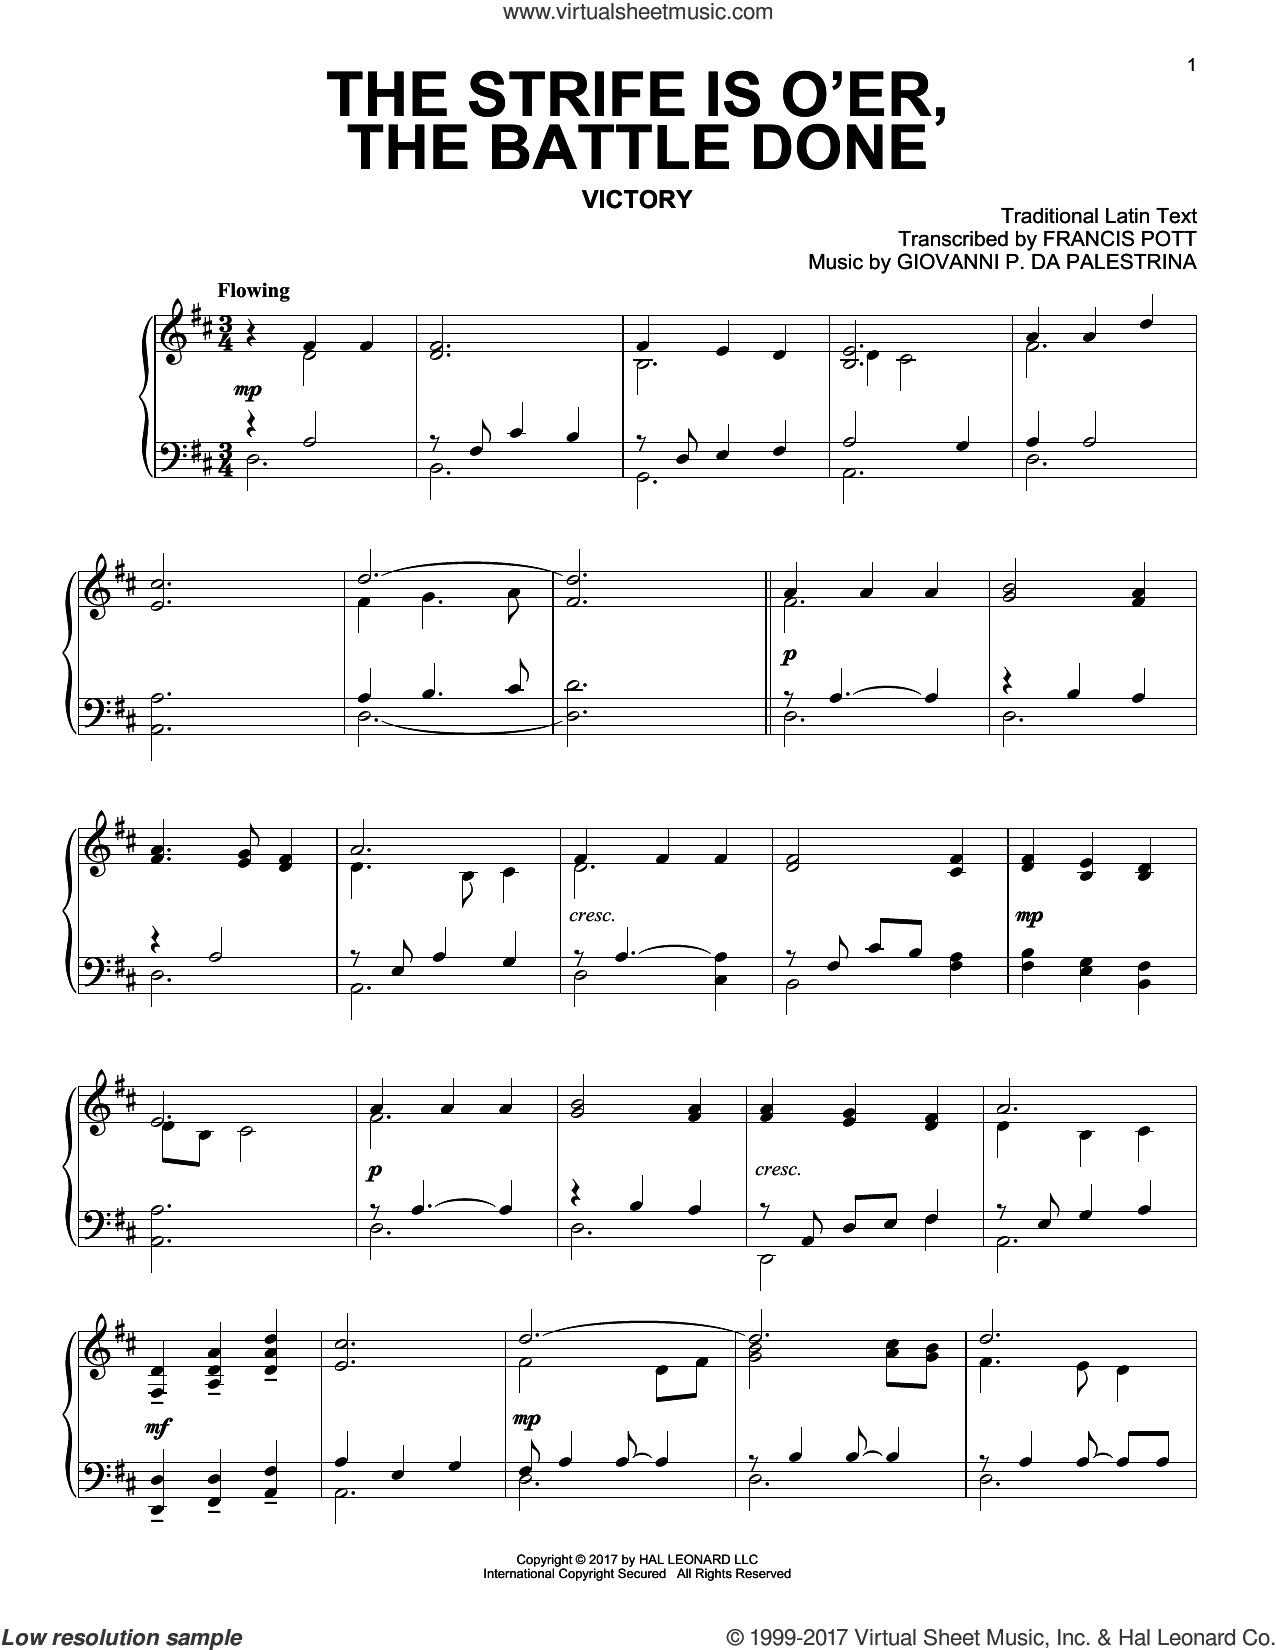 The Strife Is O'er, The Battle Done sheet music for piano solo by Francis Pott, Miscellaneous and Giovanni P. da Palestrina, classical score, intermediate skill level